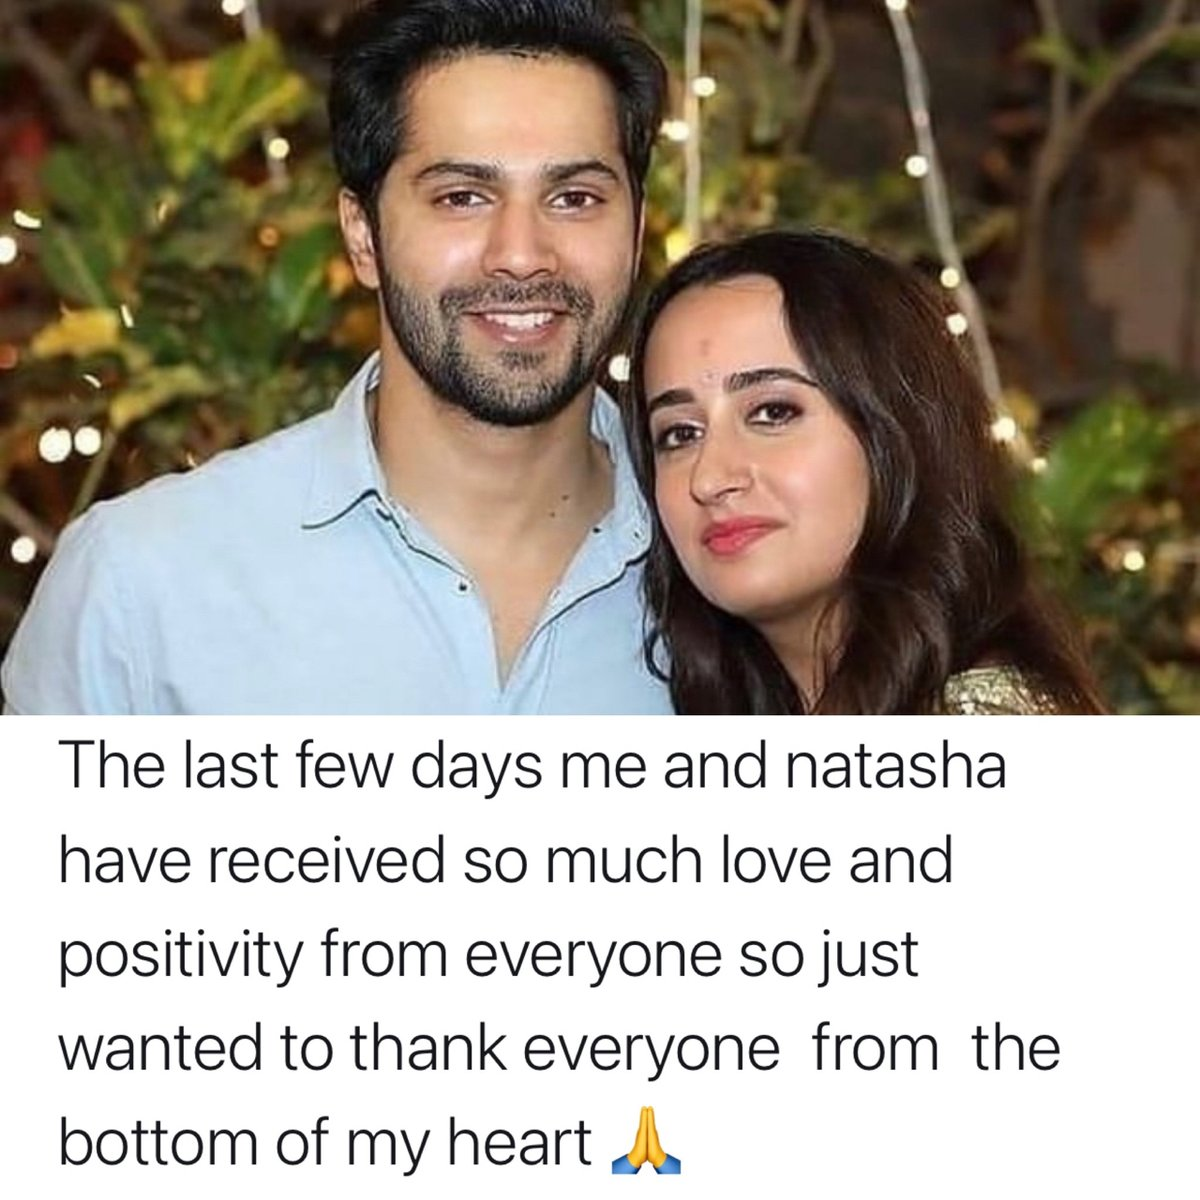 #VarunDhawan sends out a message to all his well-wishers after his marriage with #NatashaDalal.